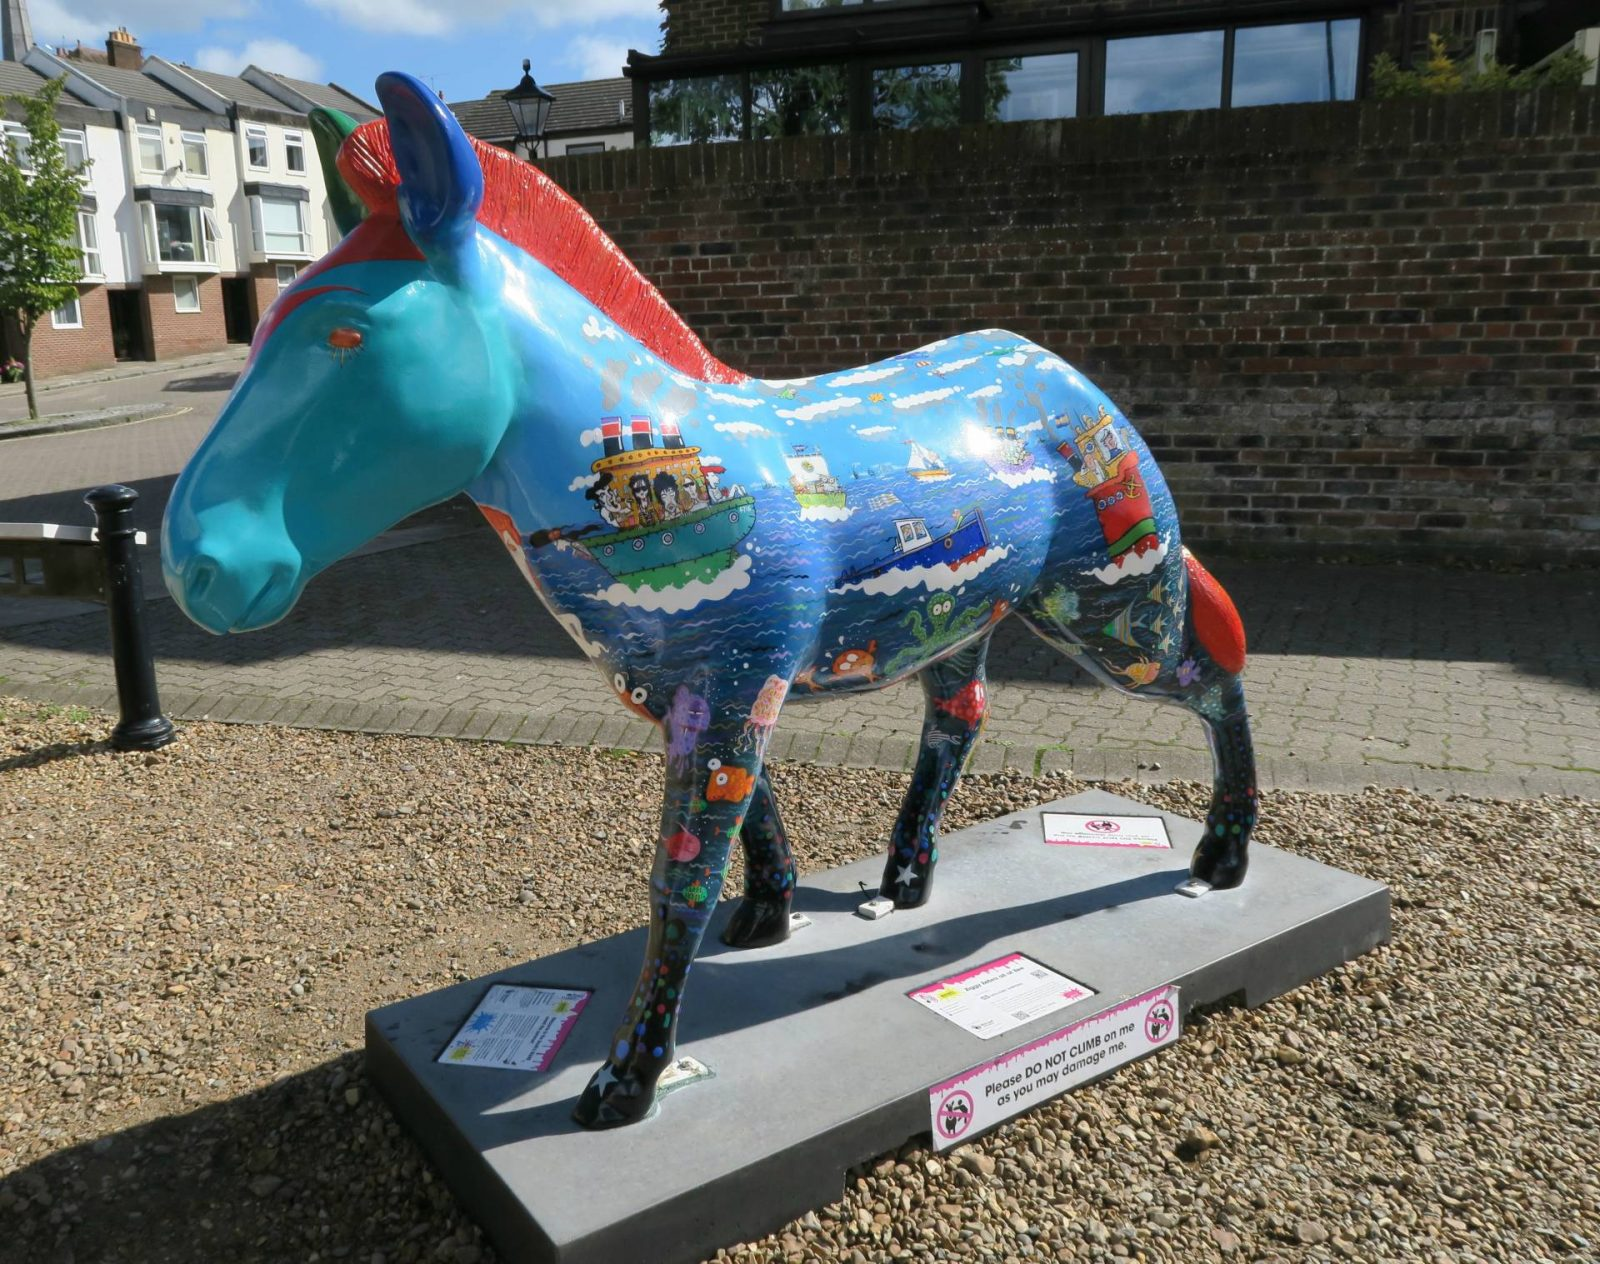 A Family Day Out Finding Marwell's Zany Zebras…